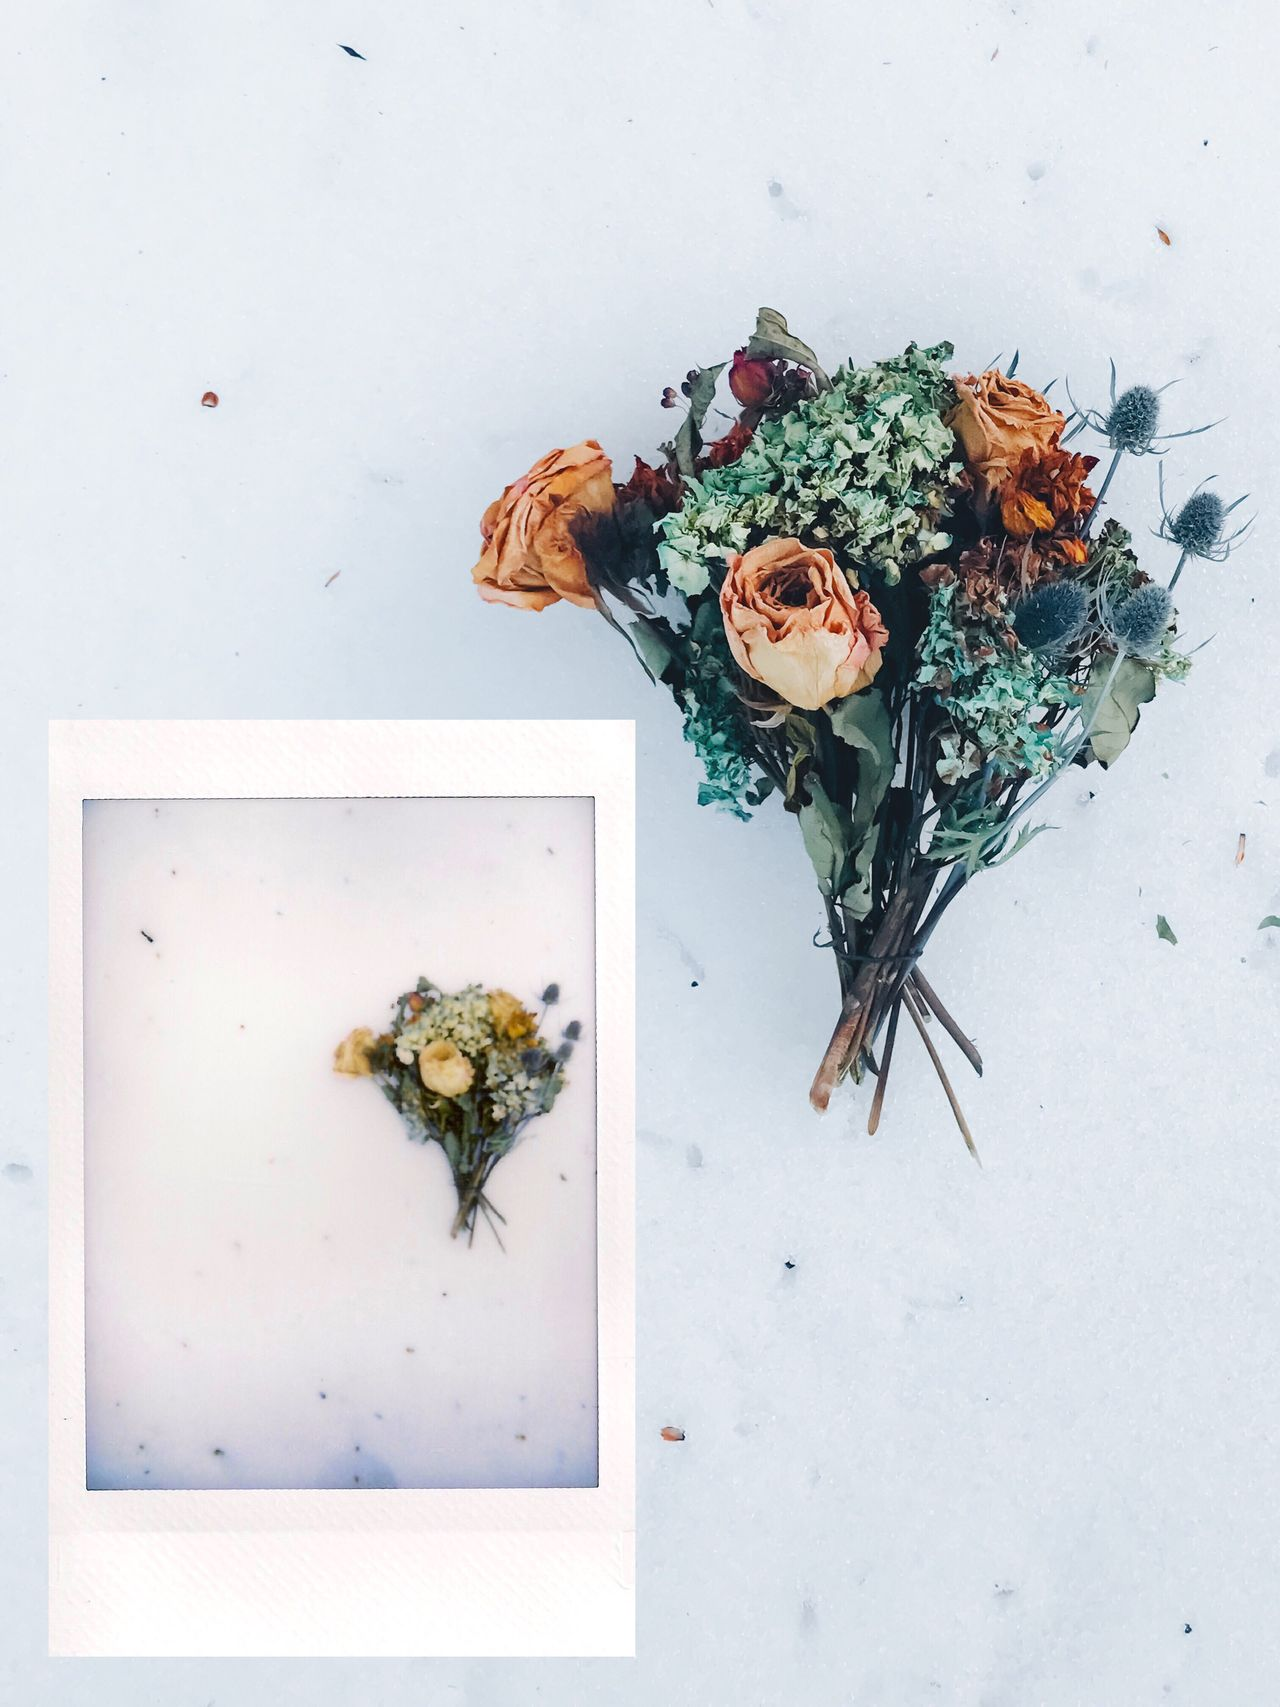 Instant Photo a Day flower fragility Freshness no people leaf white background Nature indoors close-up beauty in Nature day Instant photography Film film photography